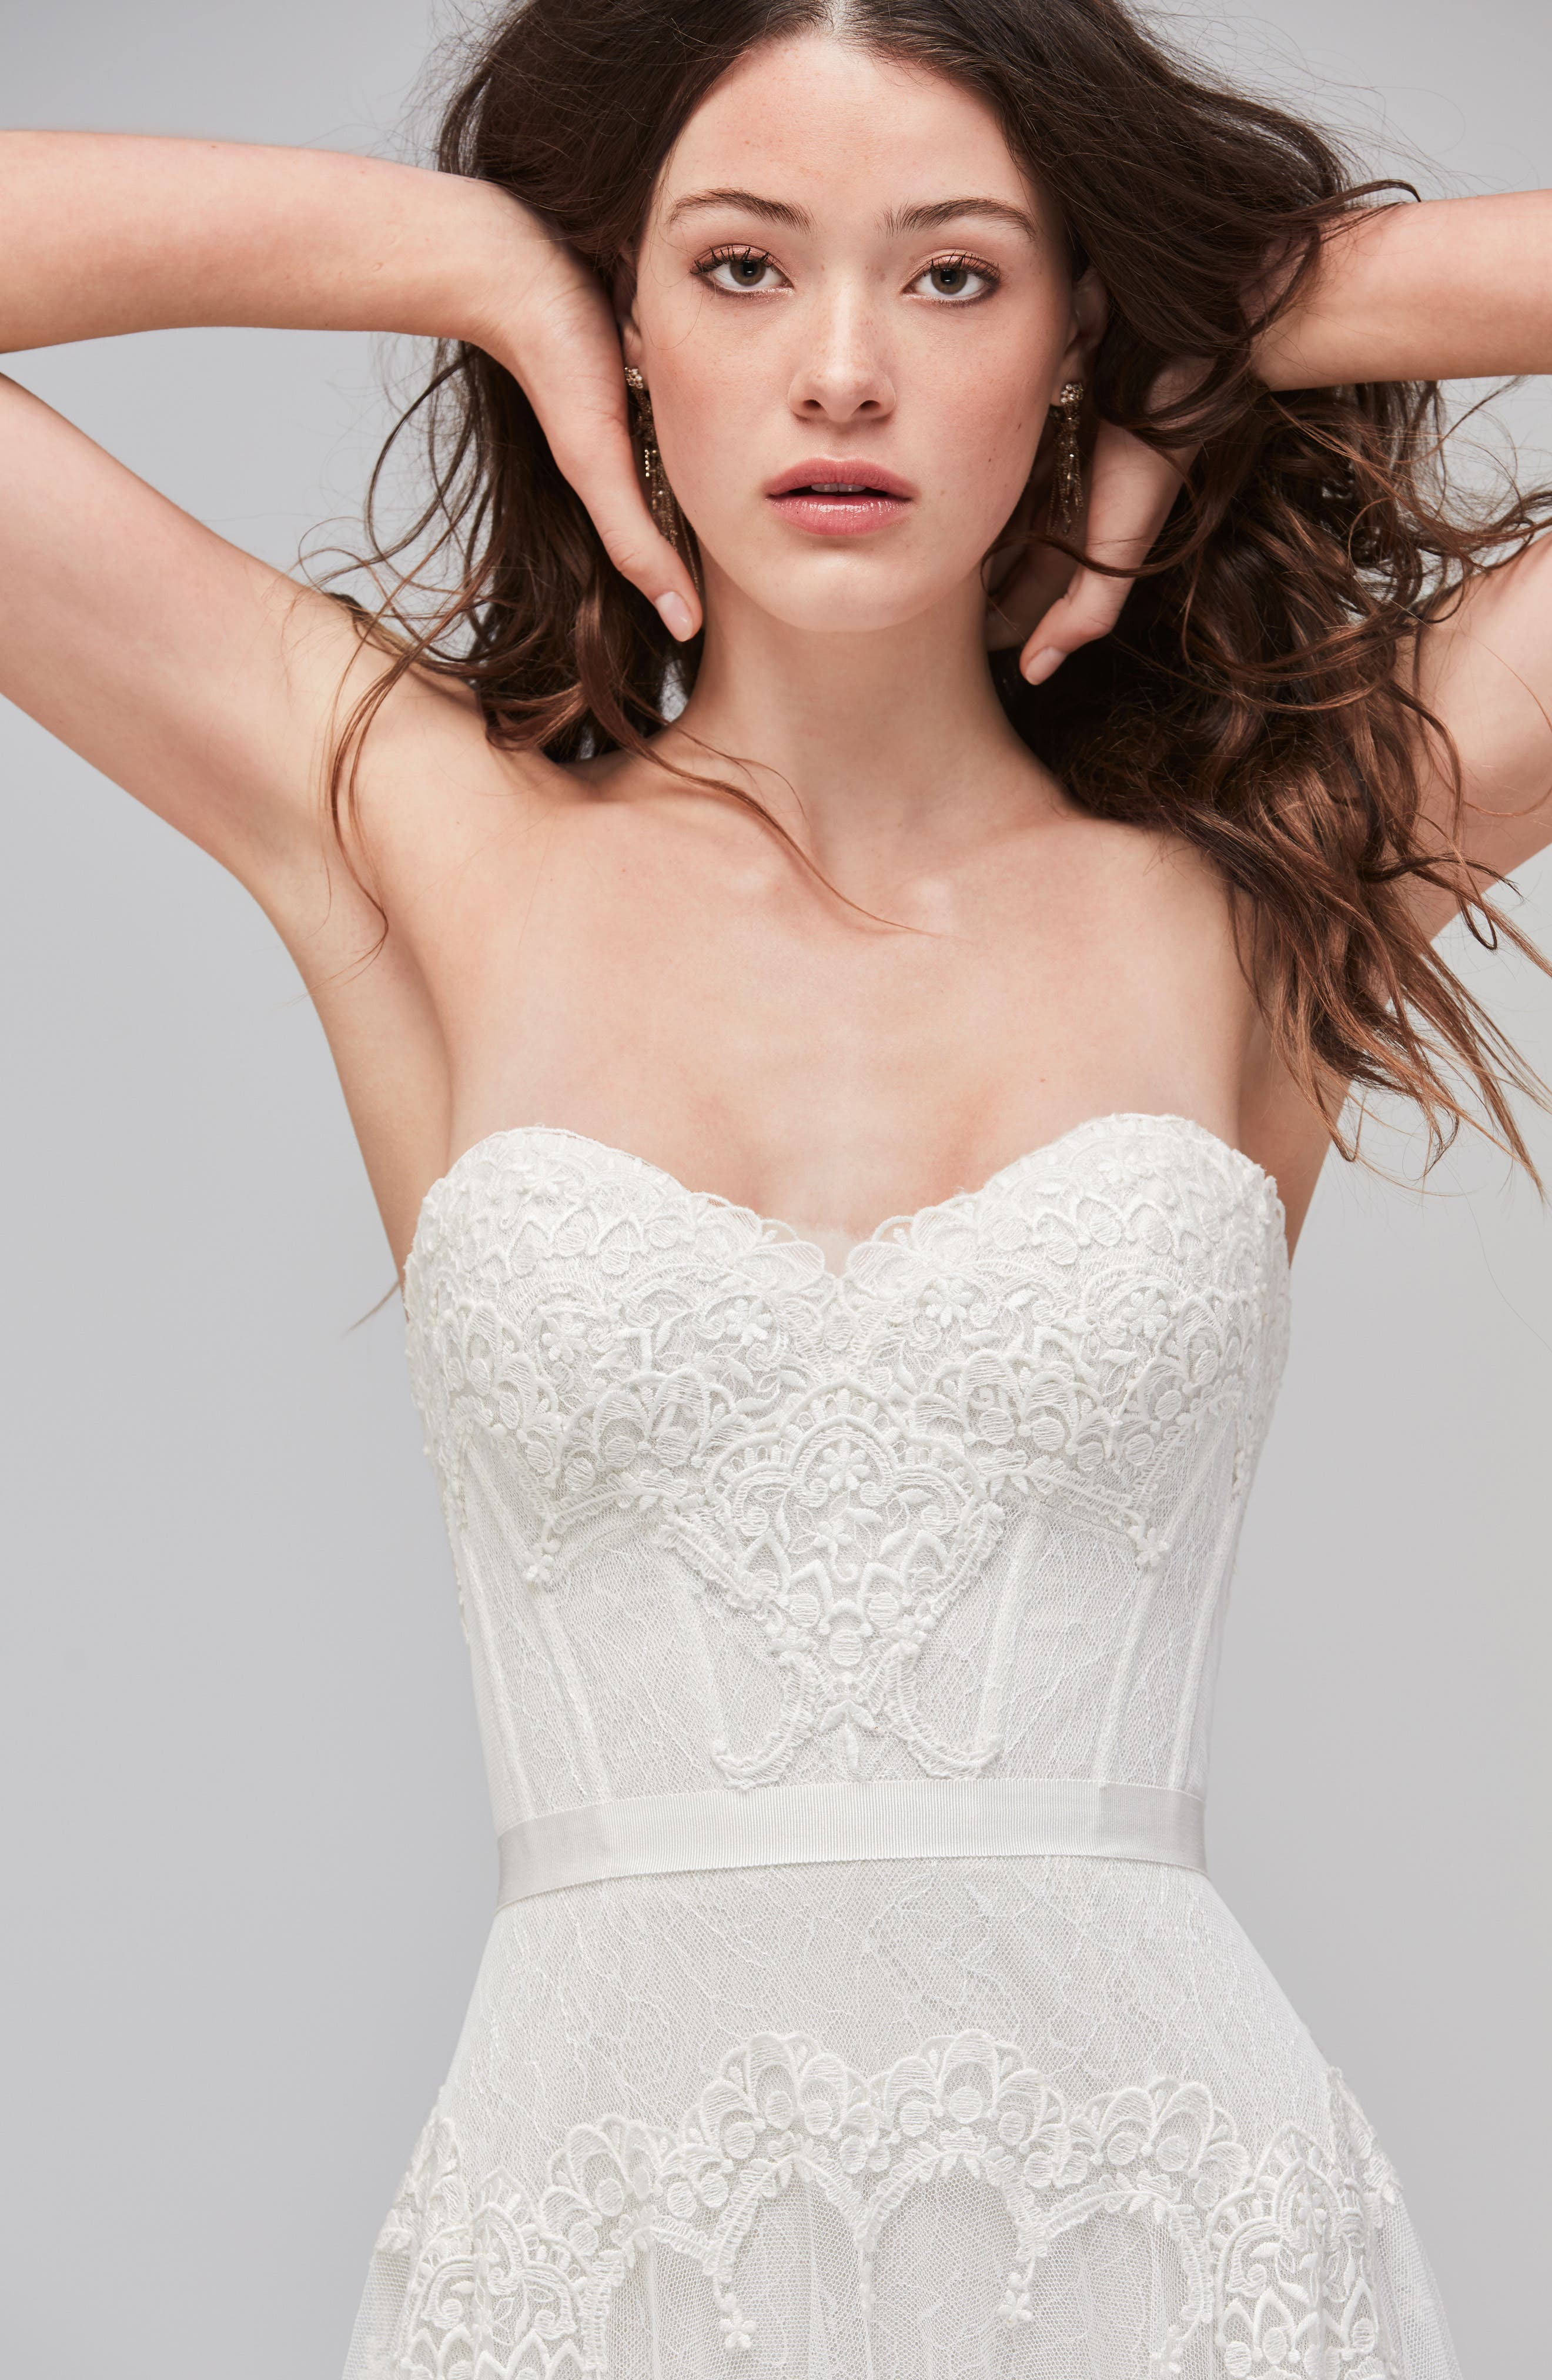 Lupine Strapless Chantilly Lace & Net Gown,                             Alternate thumbnail 3, color,                             IVORY/OYSTER